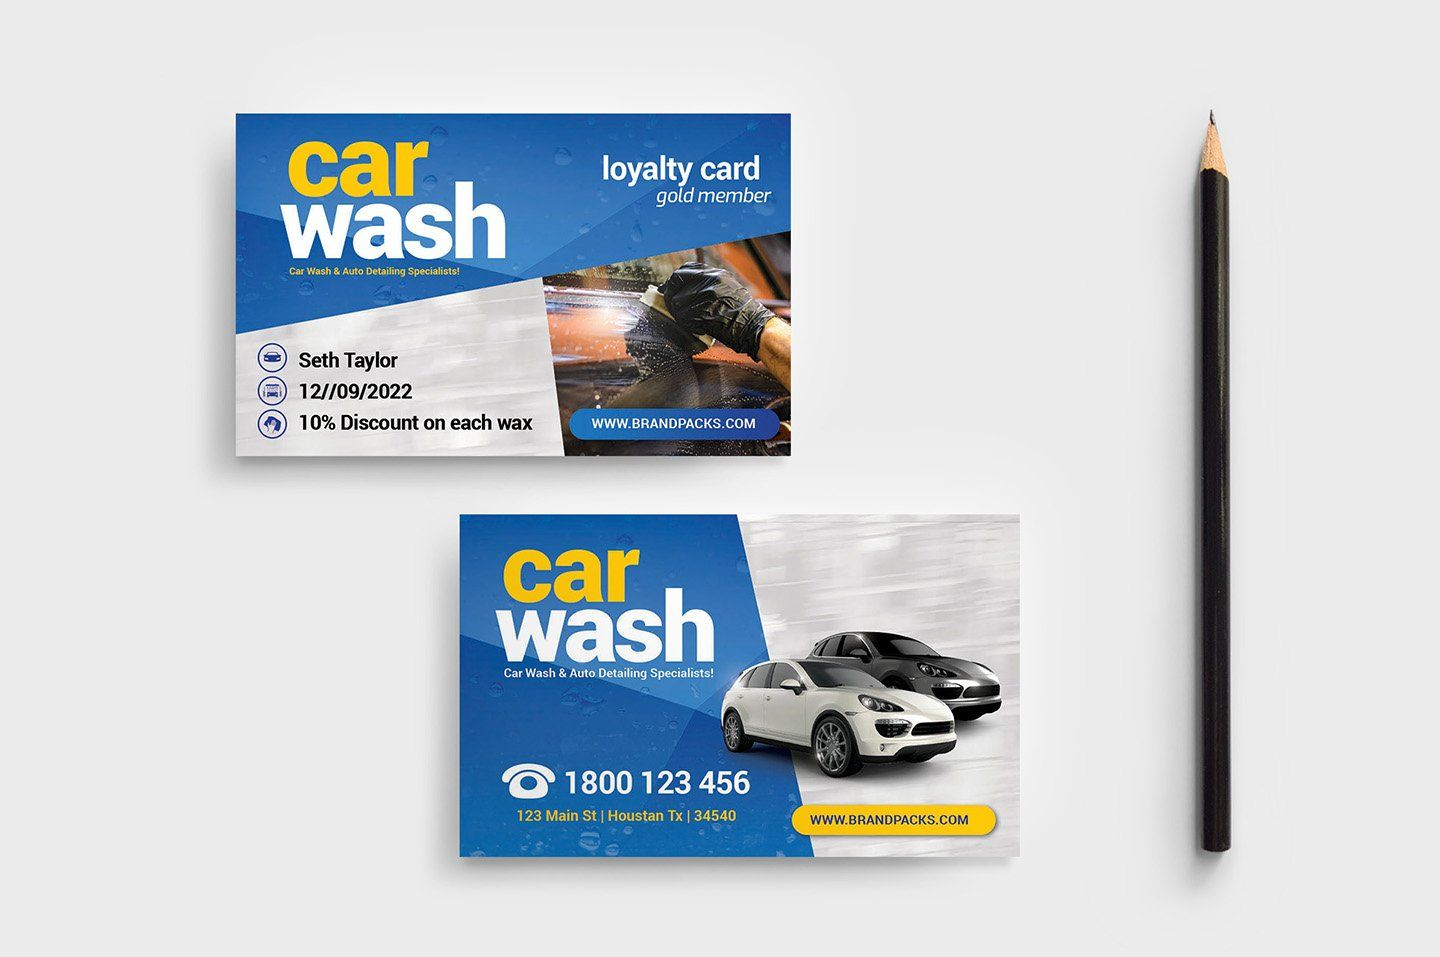 Car Wash Business Card Template Car Wash Business Car Wash Business Card Template